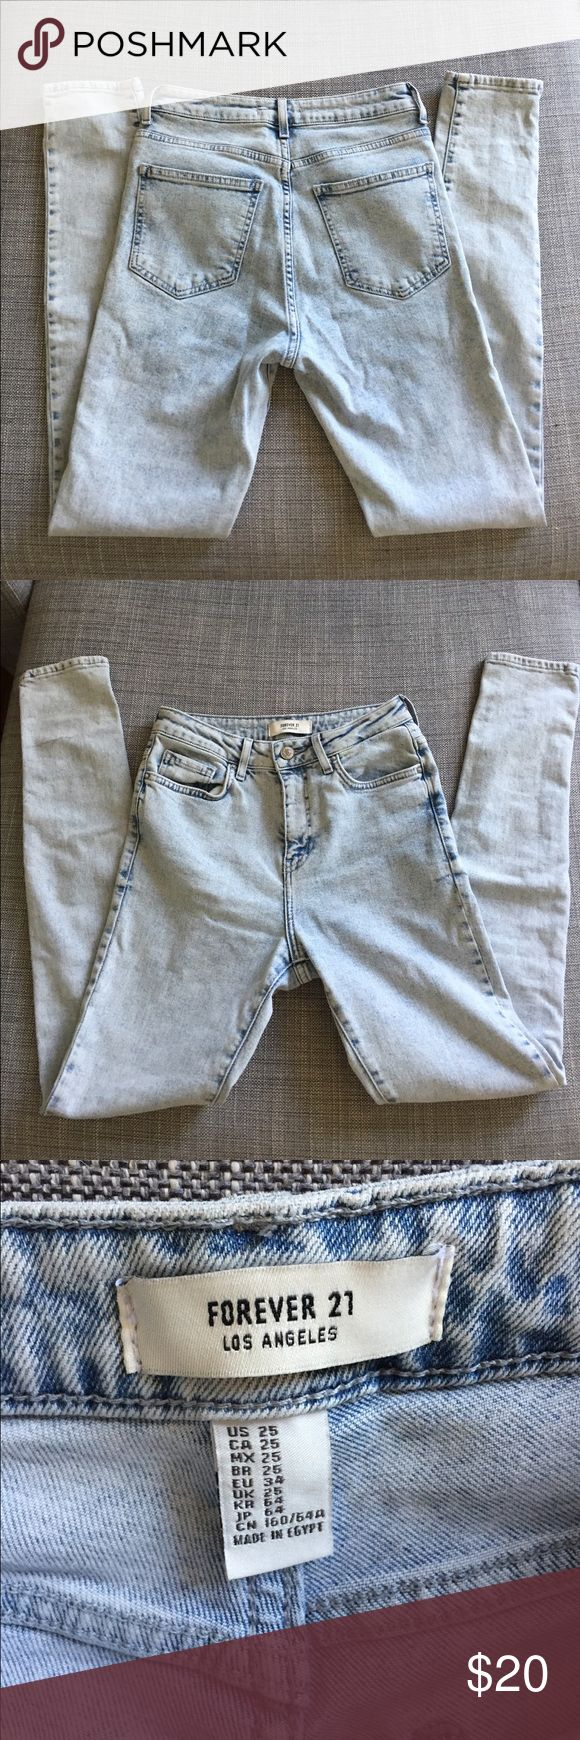 Forever 21 High Waisted Jeans High wasted light wash skinny jeans. Size 25 Forever 21 Jeans Skinny